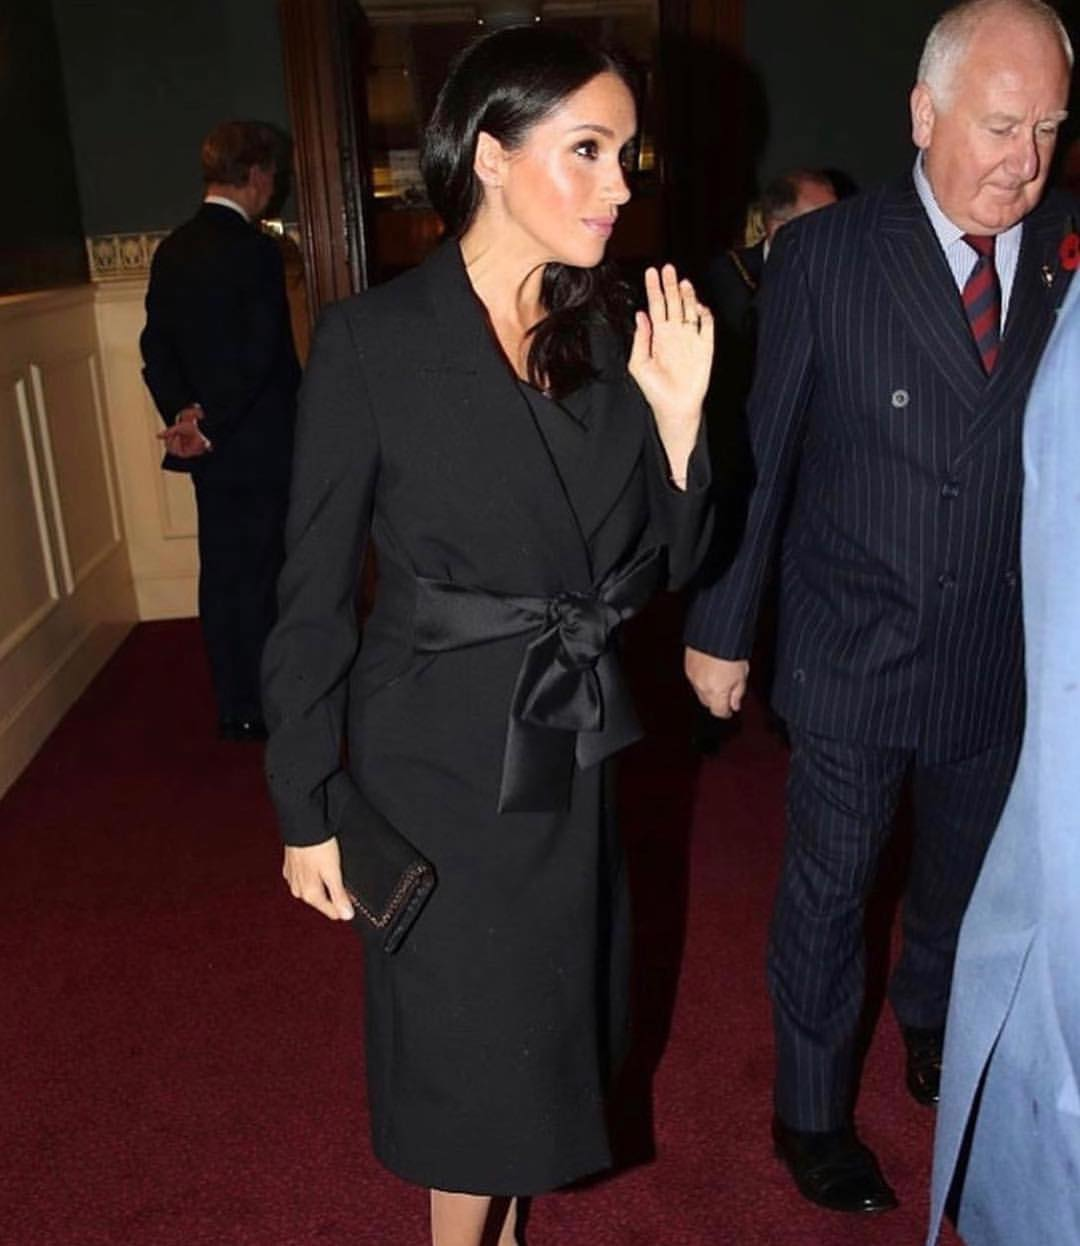 Meghan Markle Wearing Black Belted Coatdress 2020